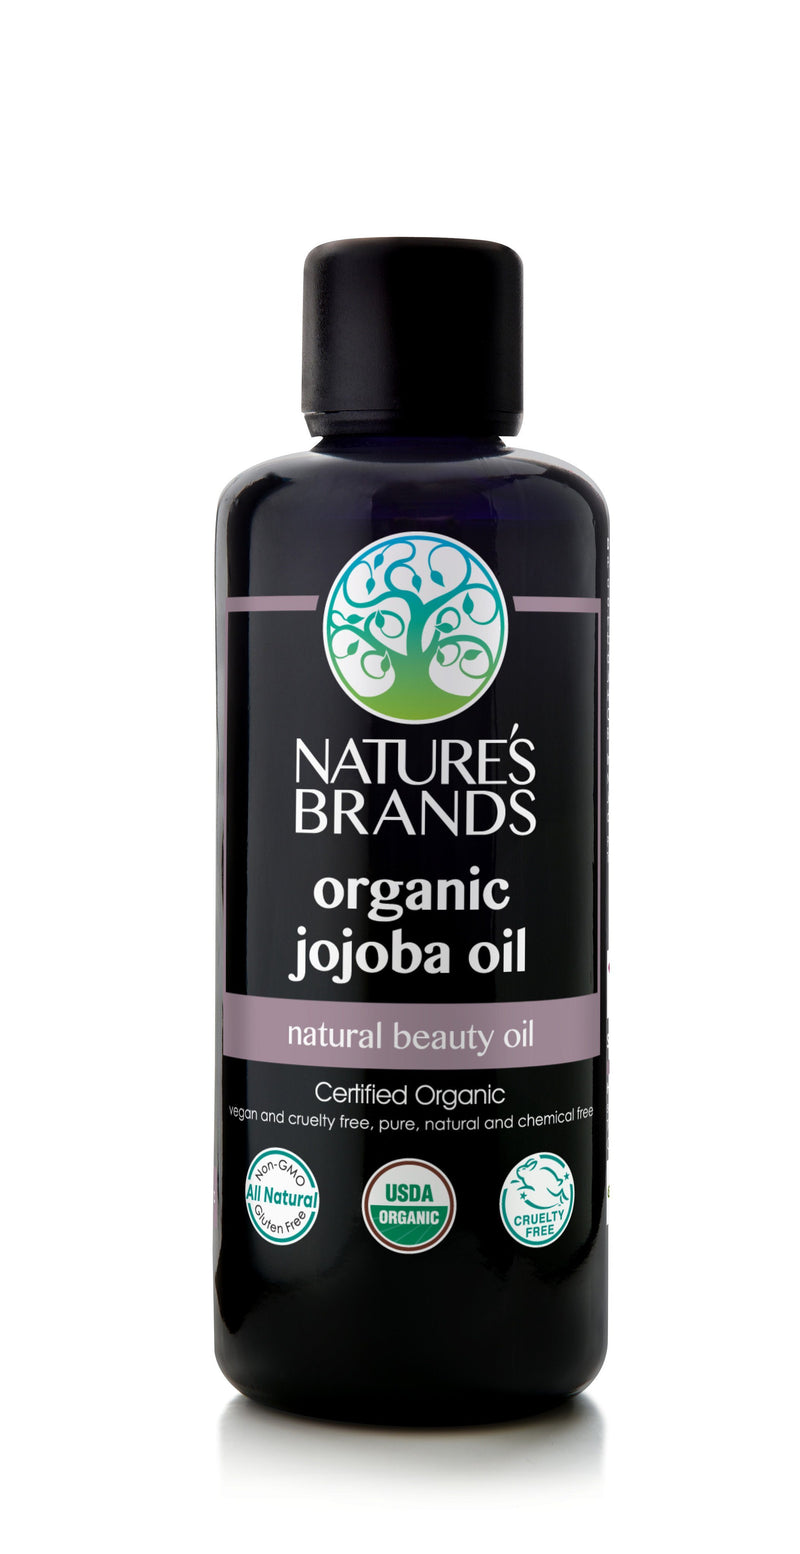 Herbal Choice Mari Organic Jojoba Oil - Herbal Choice Mari Organic Jojoba Oil - Herbal Choice Mari Organic Jojoba Oil